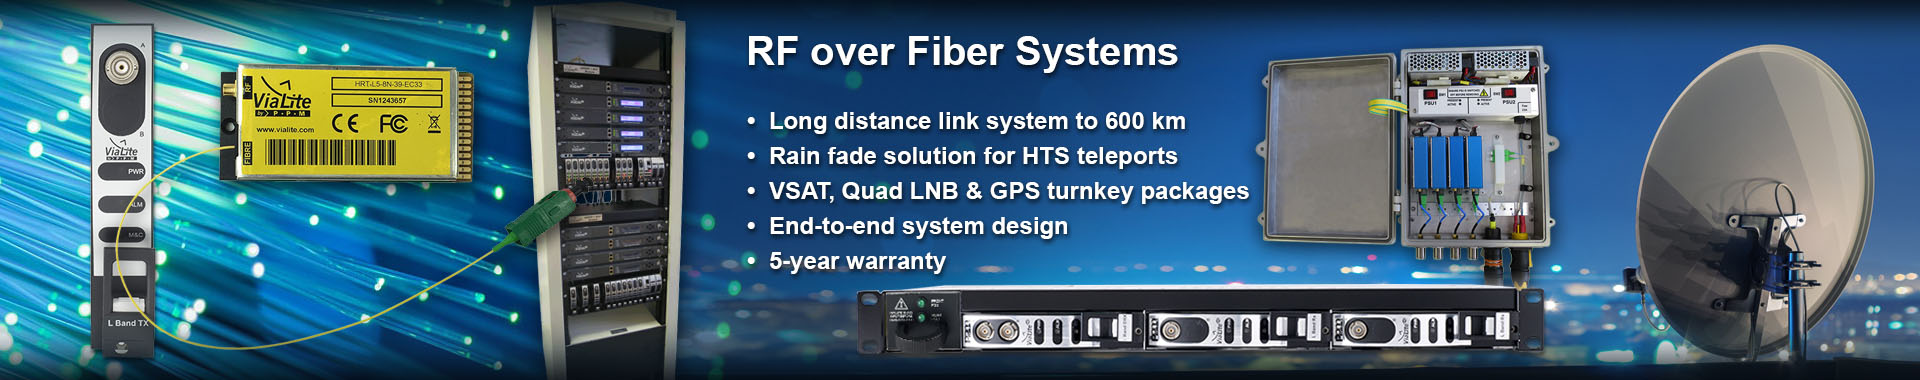 ViaLite RF Systems slider